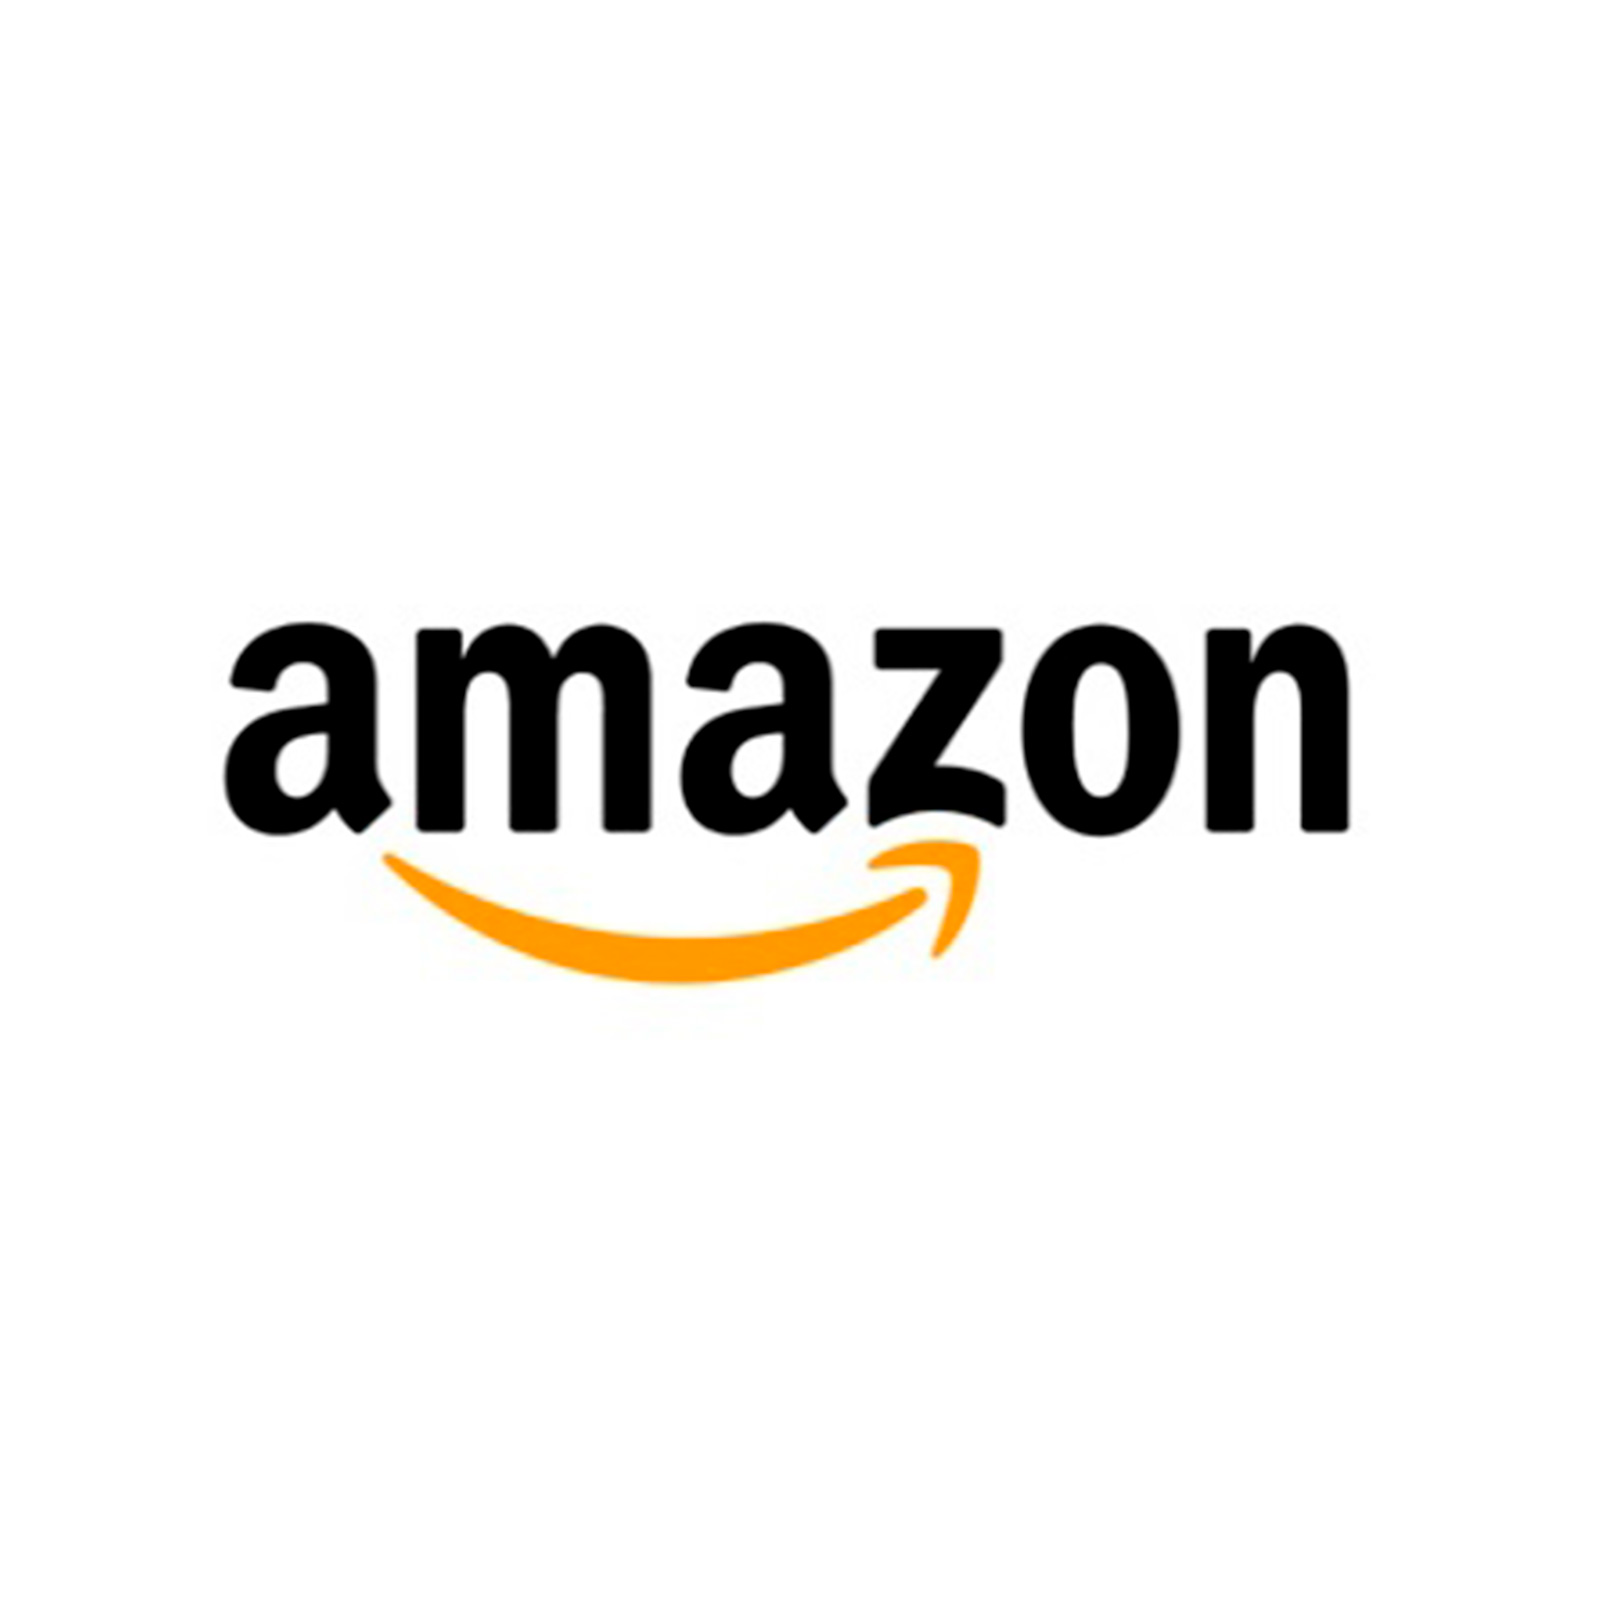 Amazon.com, Inc., doing business as Amazon, is an American electronic commerce and cloud computing company based in Seattle